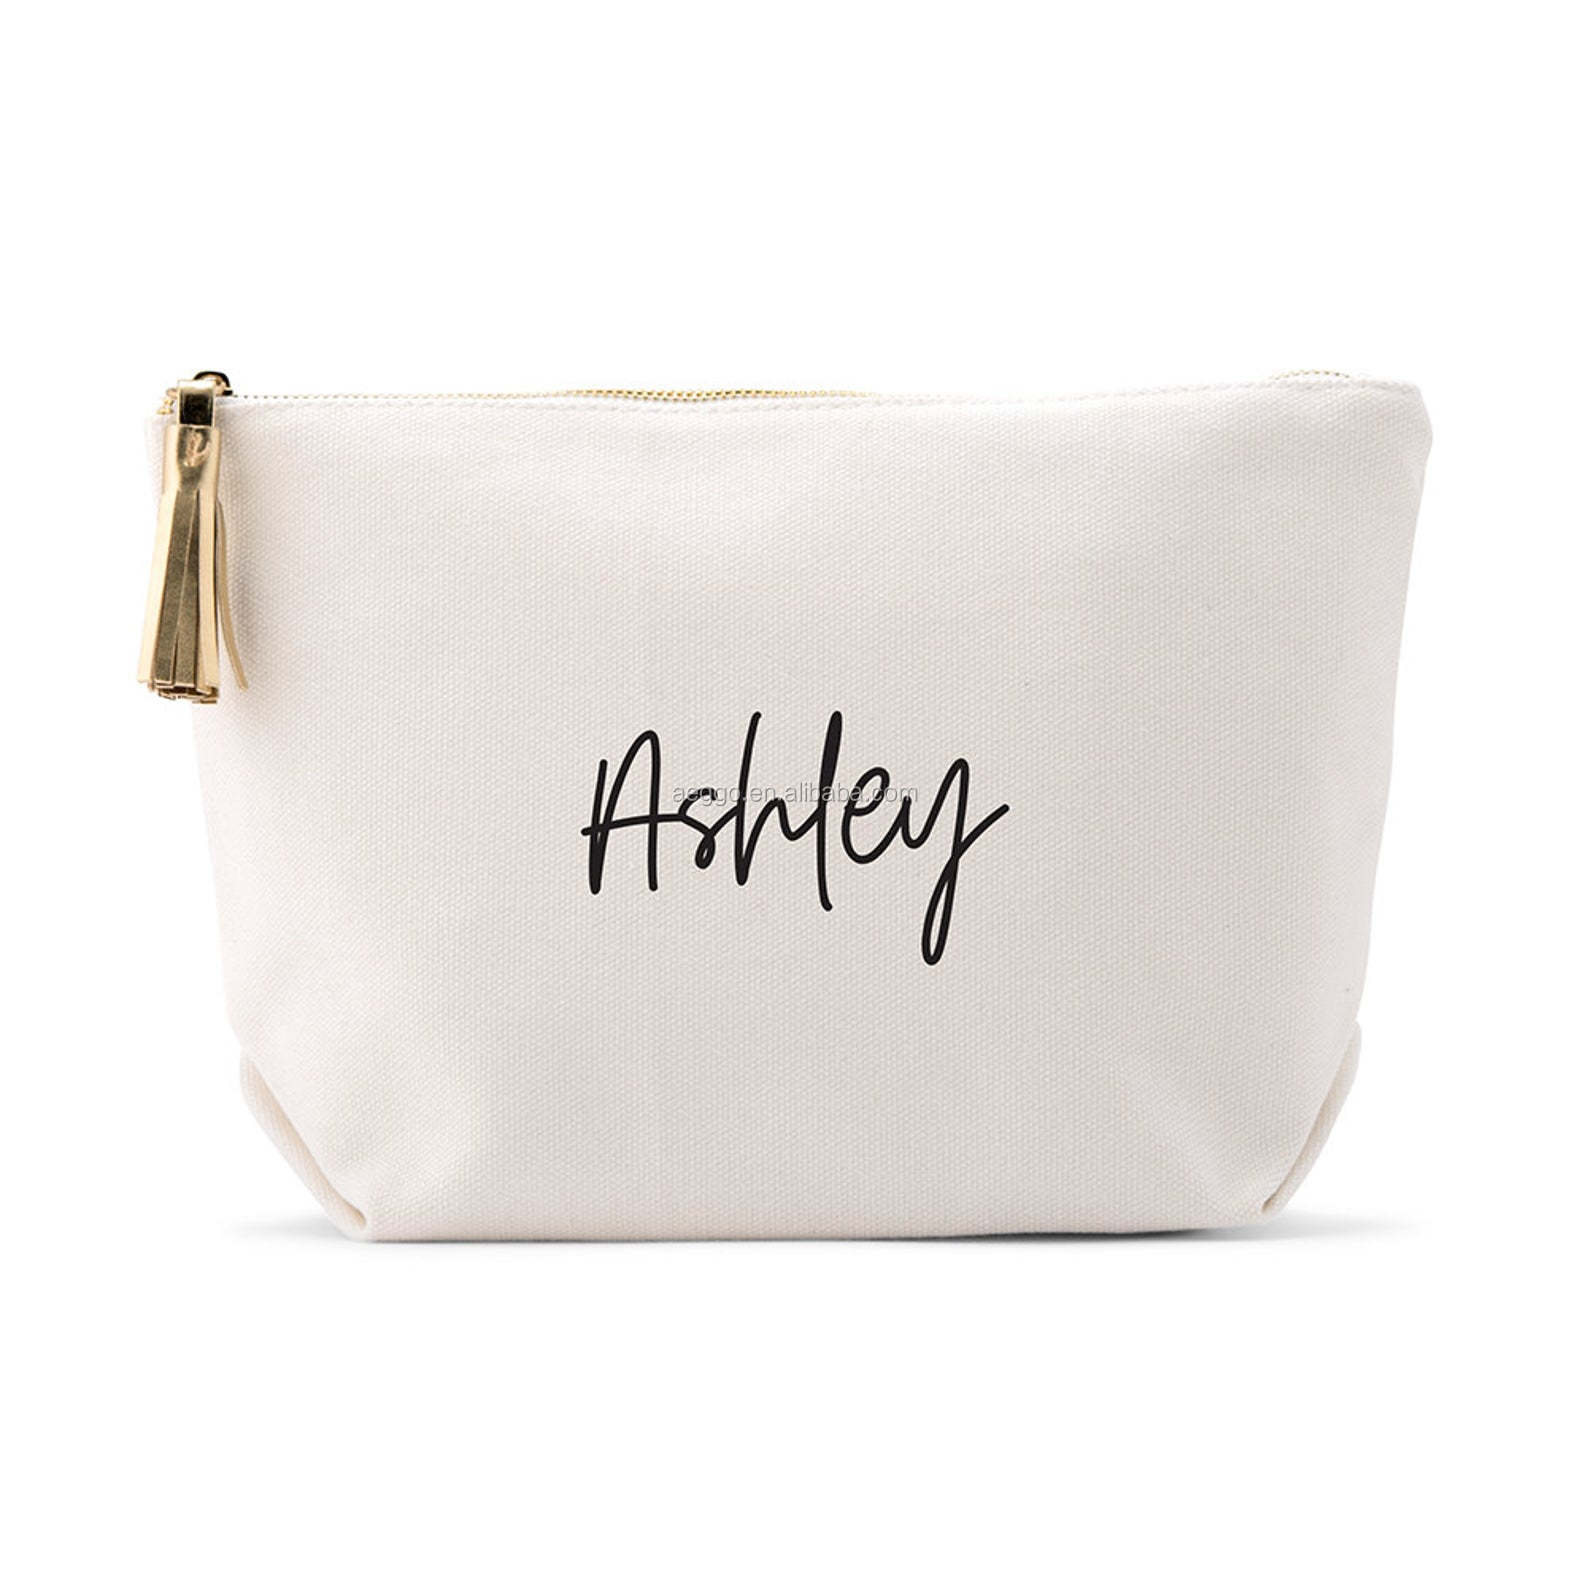 Personalized Cosmetics Bag Script Nickname Mother S Day Gift Gifts For Her Birthday Best Friend Bff Custom Makeup Bag Buy Personalized Cosmetics Bag Gift Clutch For Birthday Custom Makeup Bag Product On Alibaba Com